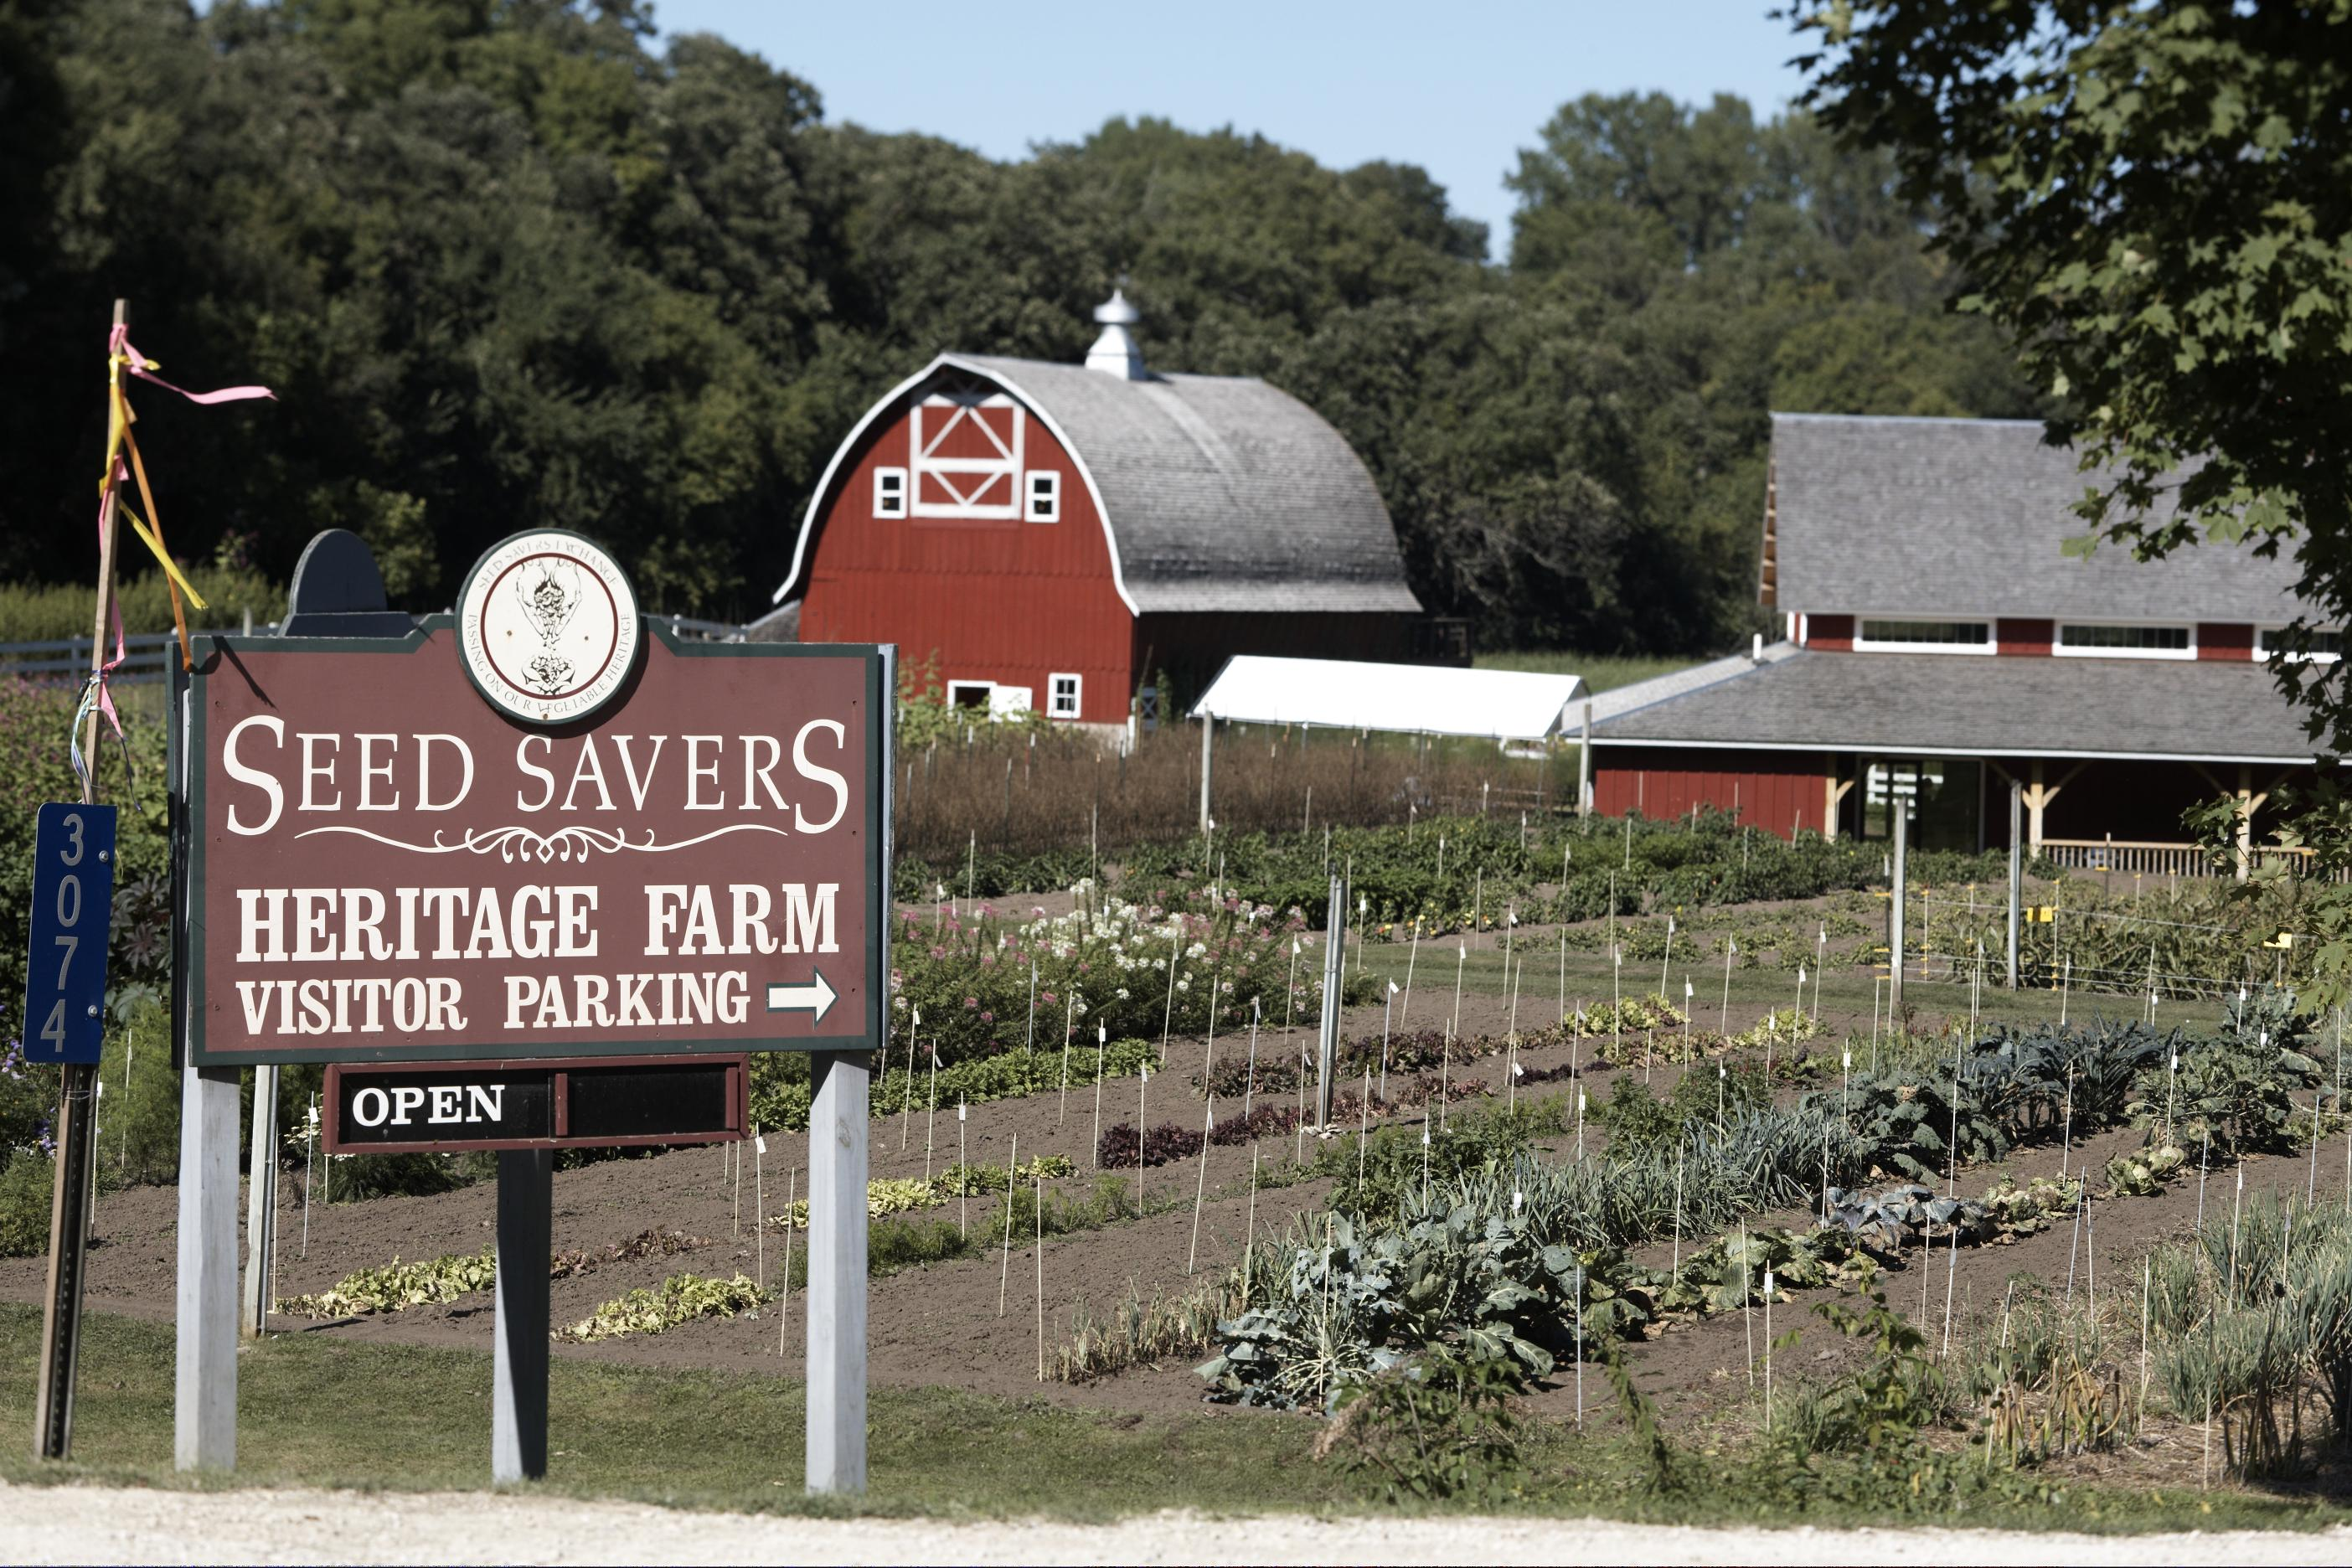 Decorah's Seed Savers Heritage Farm.